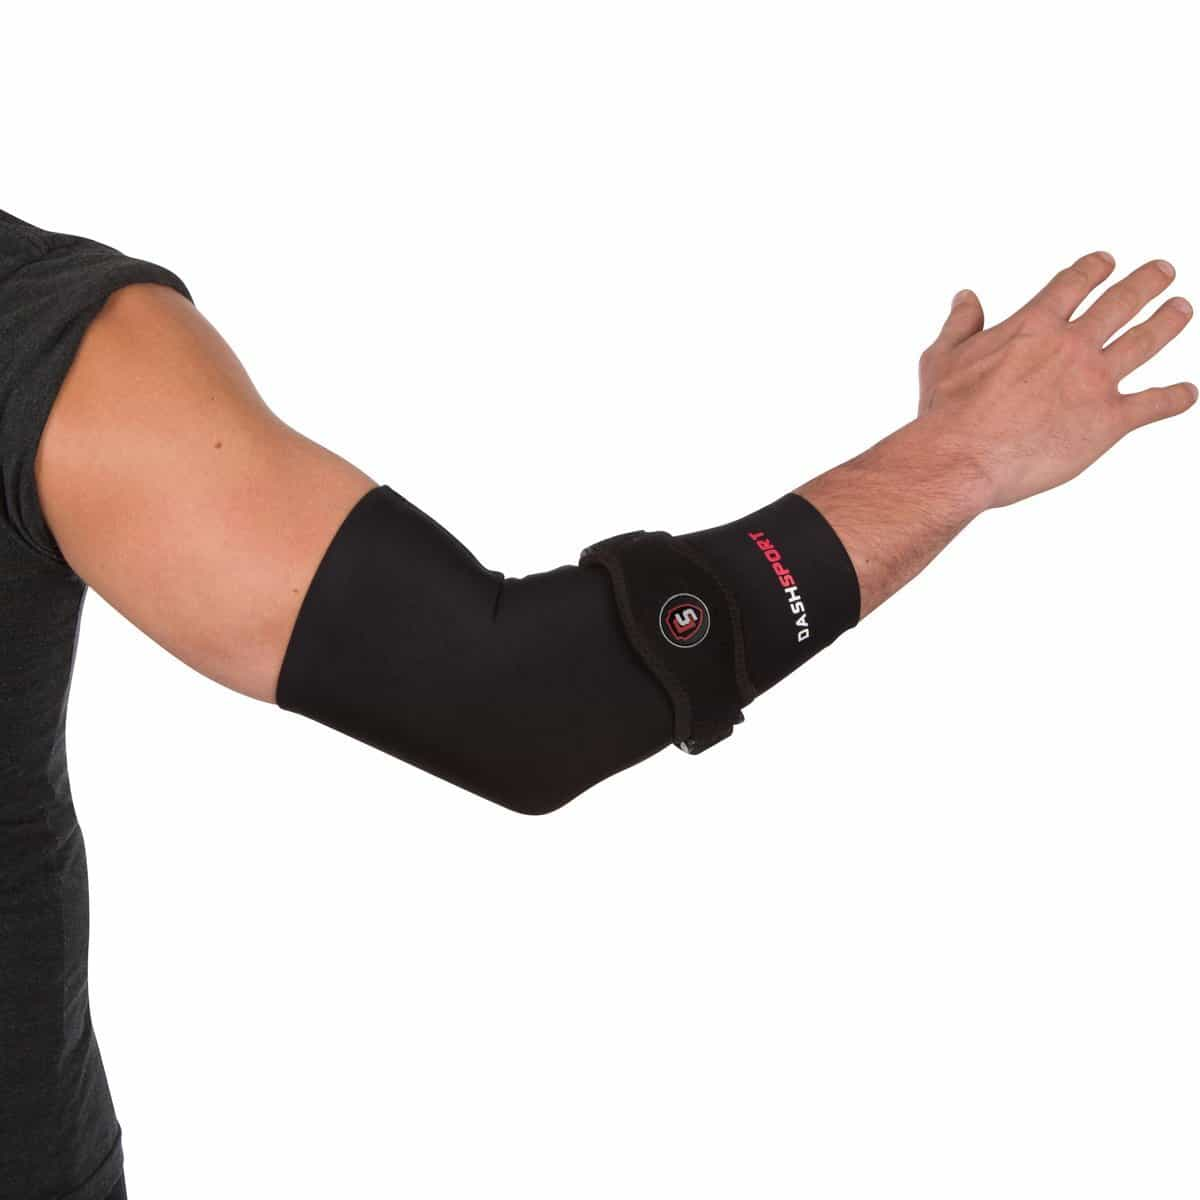 how to put on strong elbow sleeves